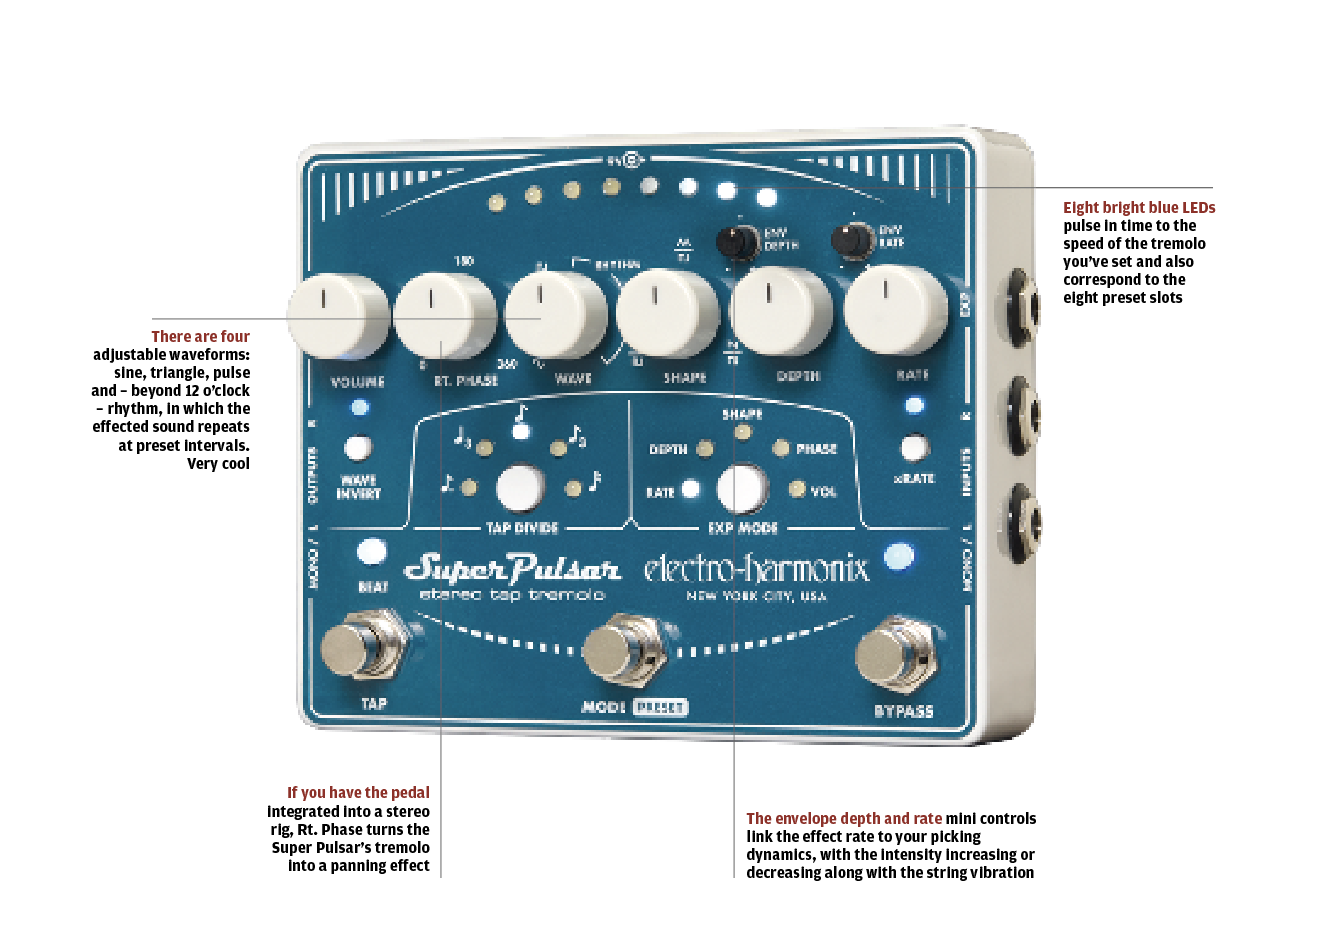 The 20 Best Fx Pedals In World Today All Things Figure 1 Wah Pedal Circuit Schematic Diagram Prolific New York Brand Takes One Of Oldest Guitar Effect Types To Another Level With This Feature Packed Stereo Tremolo